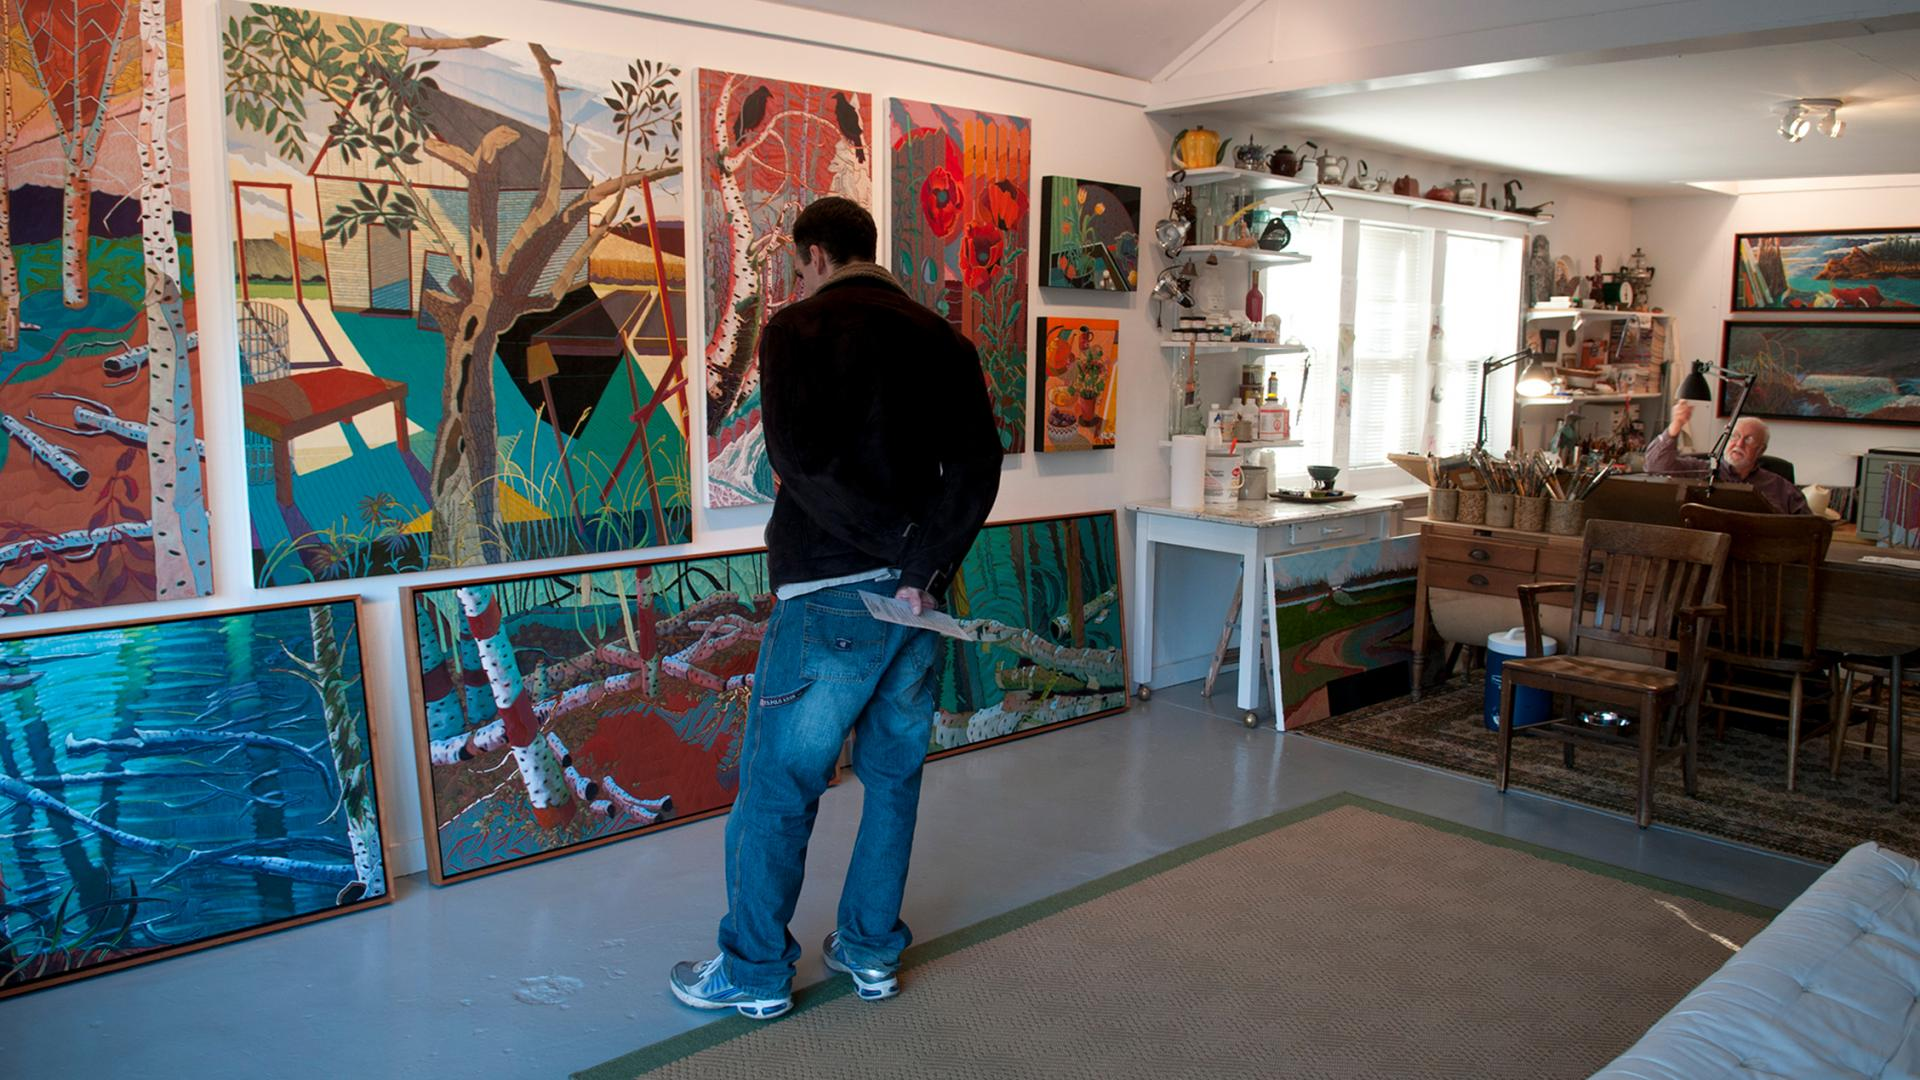 A man looks at colorful artwork in Marley Kaul art studio in Bemidji